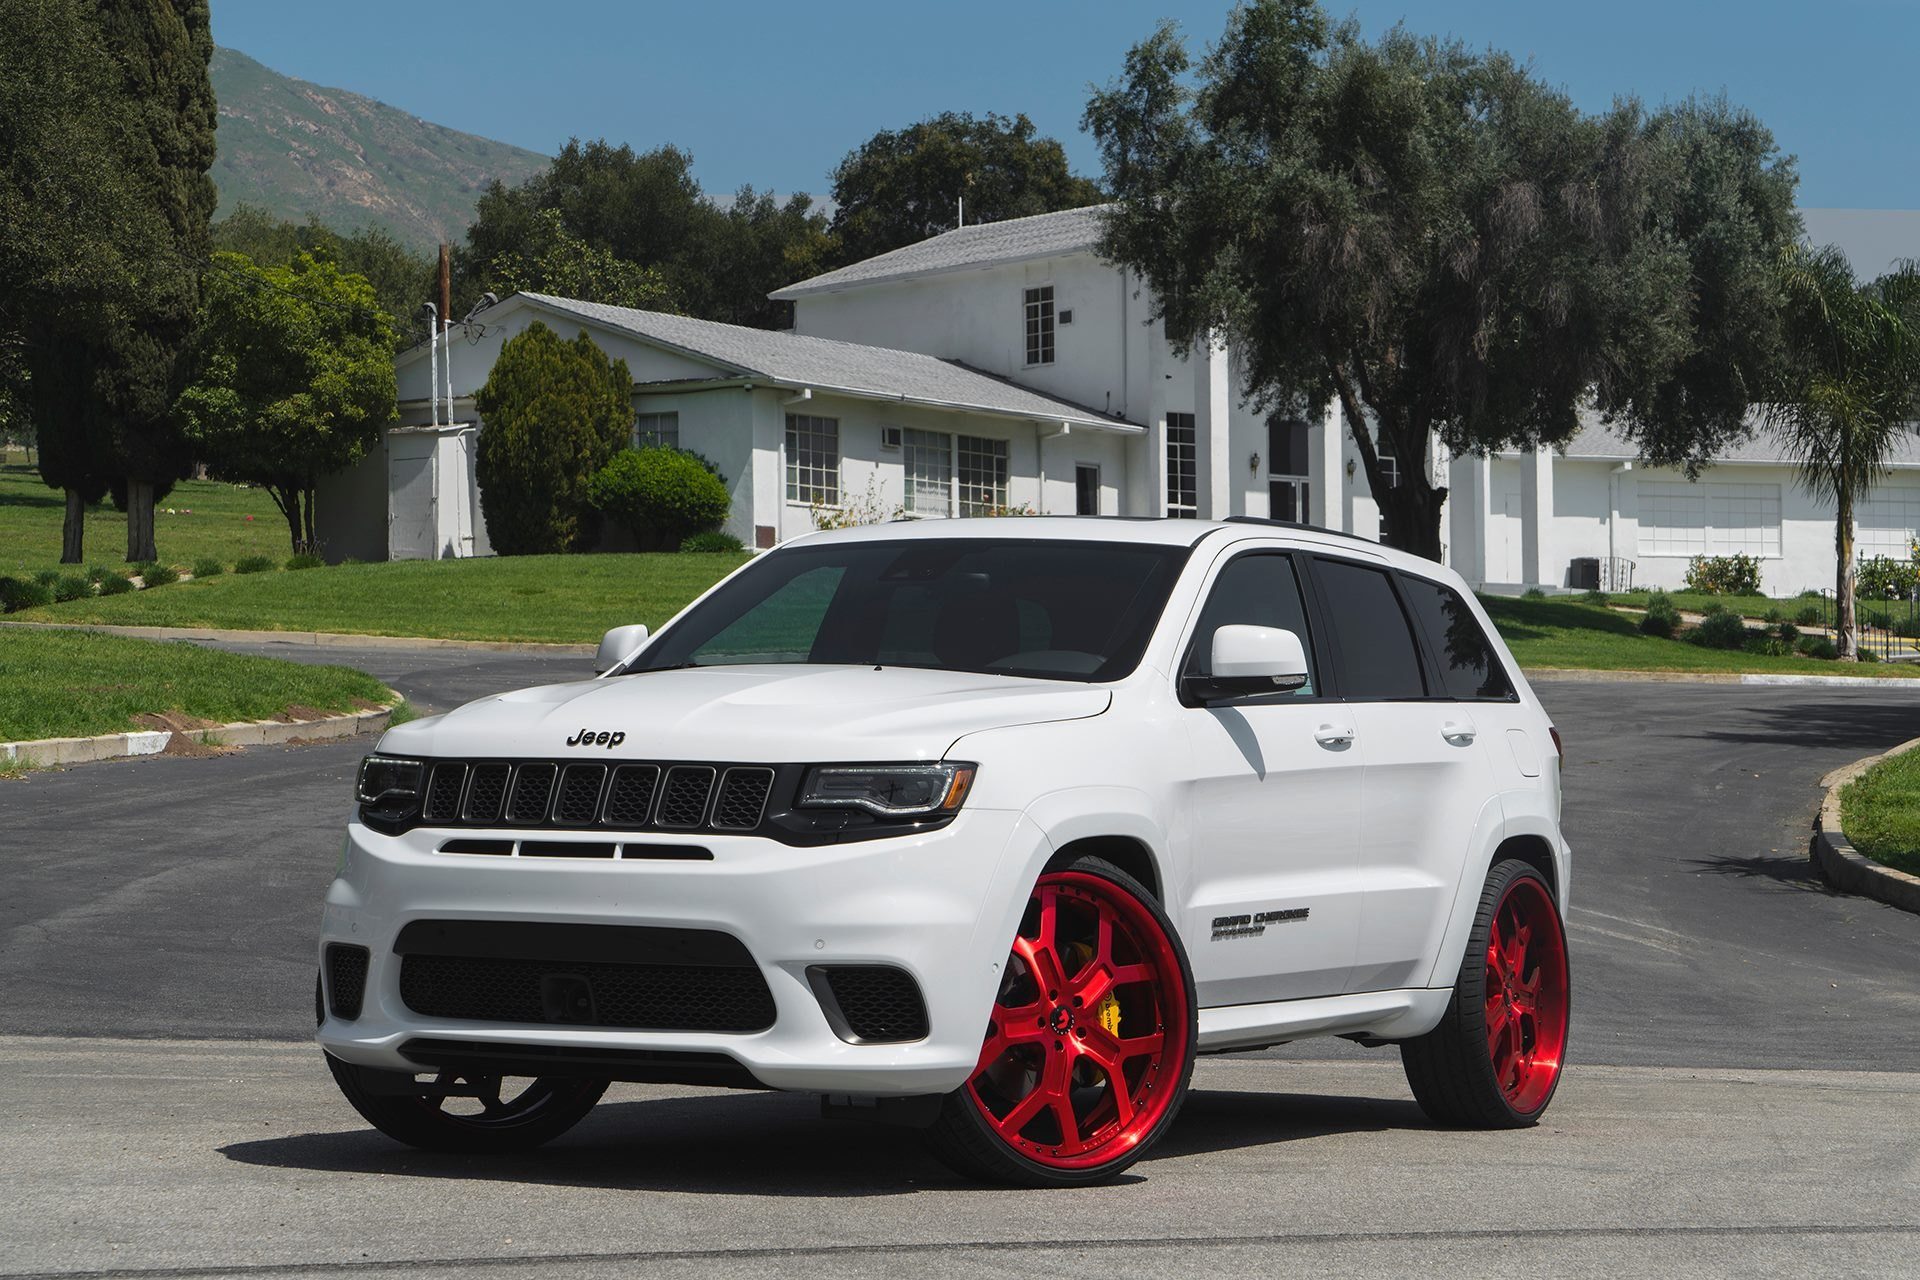 custom 2017 jeep grand cherokee images mods photos upgrades gallery. Black Bedroom Furniture Sets. Home Design Ideas